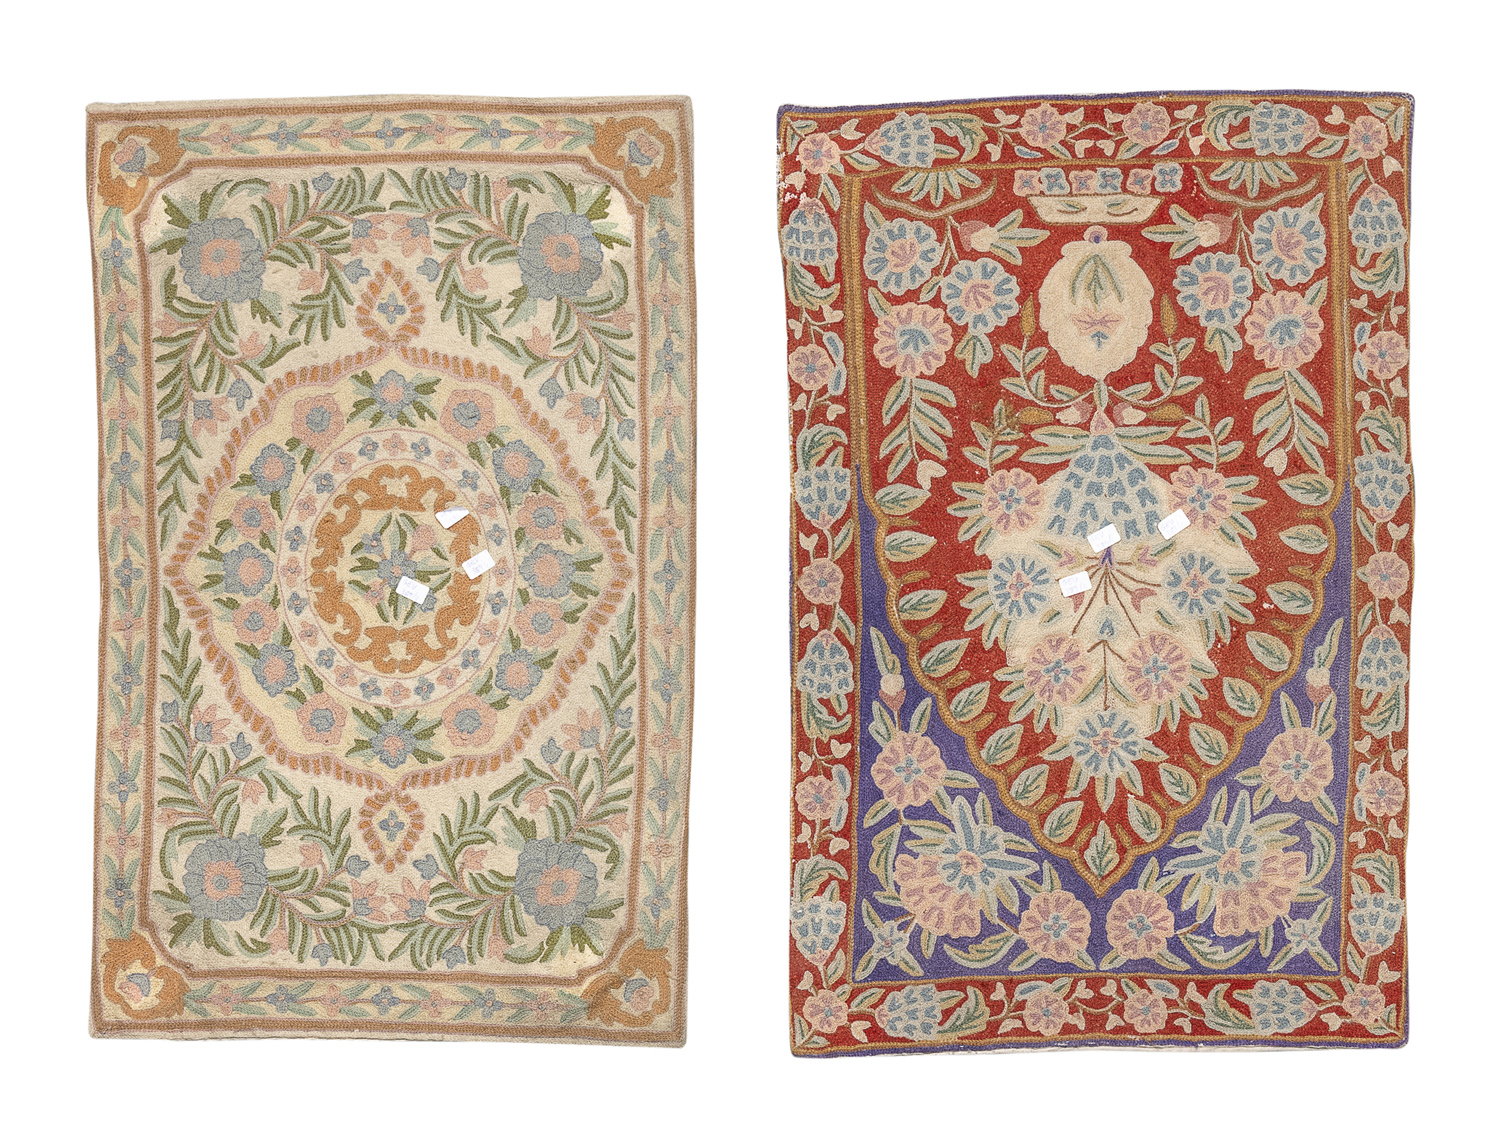 PAIR OF SMALL CARPETS PROBABLY INDIA 20TH CENTURY